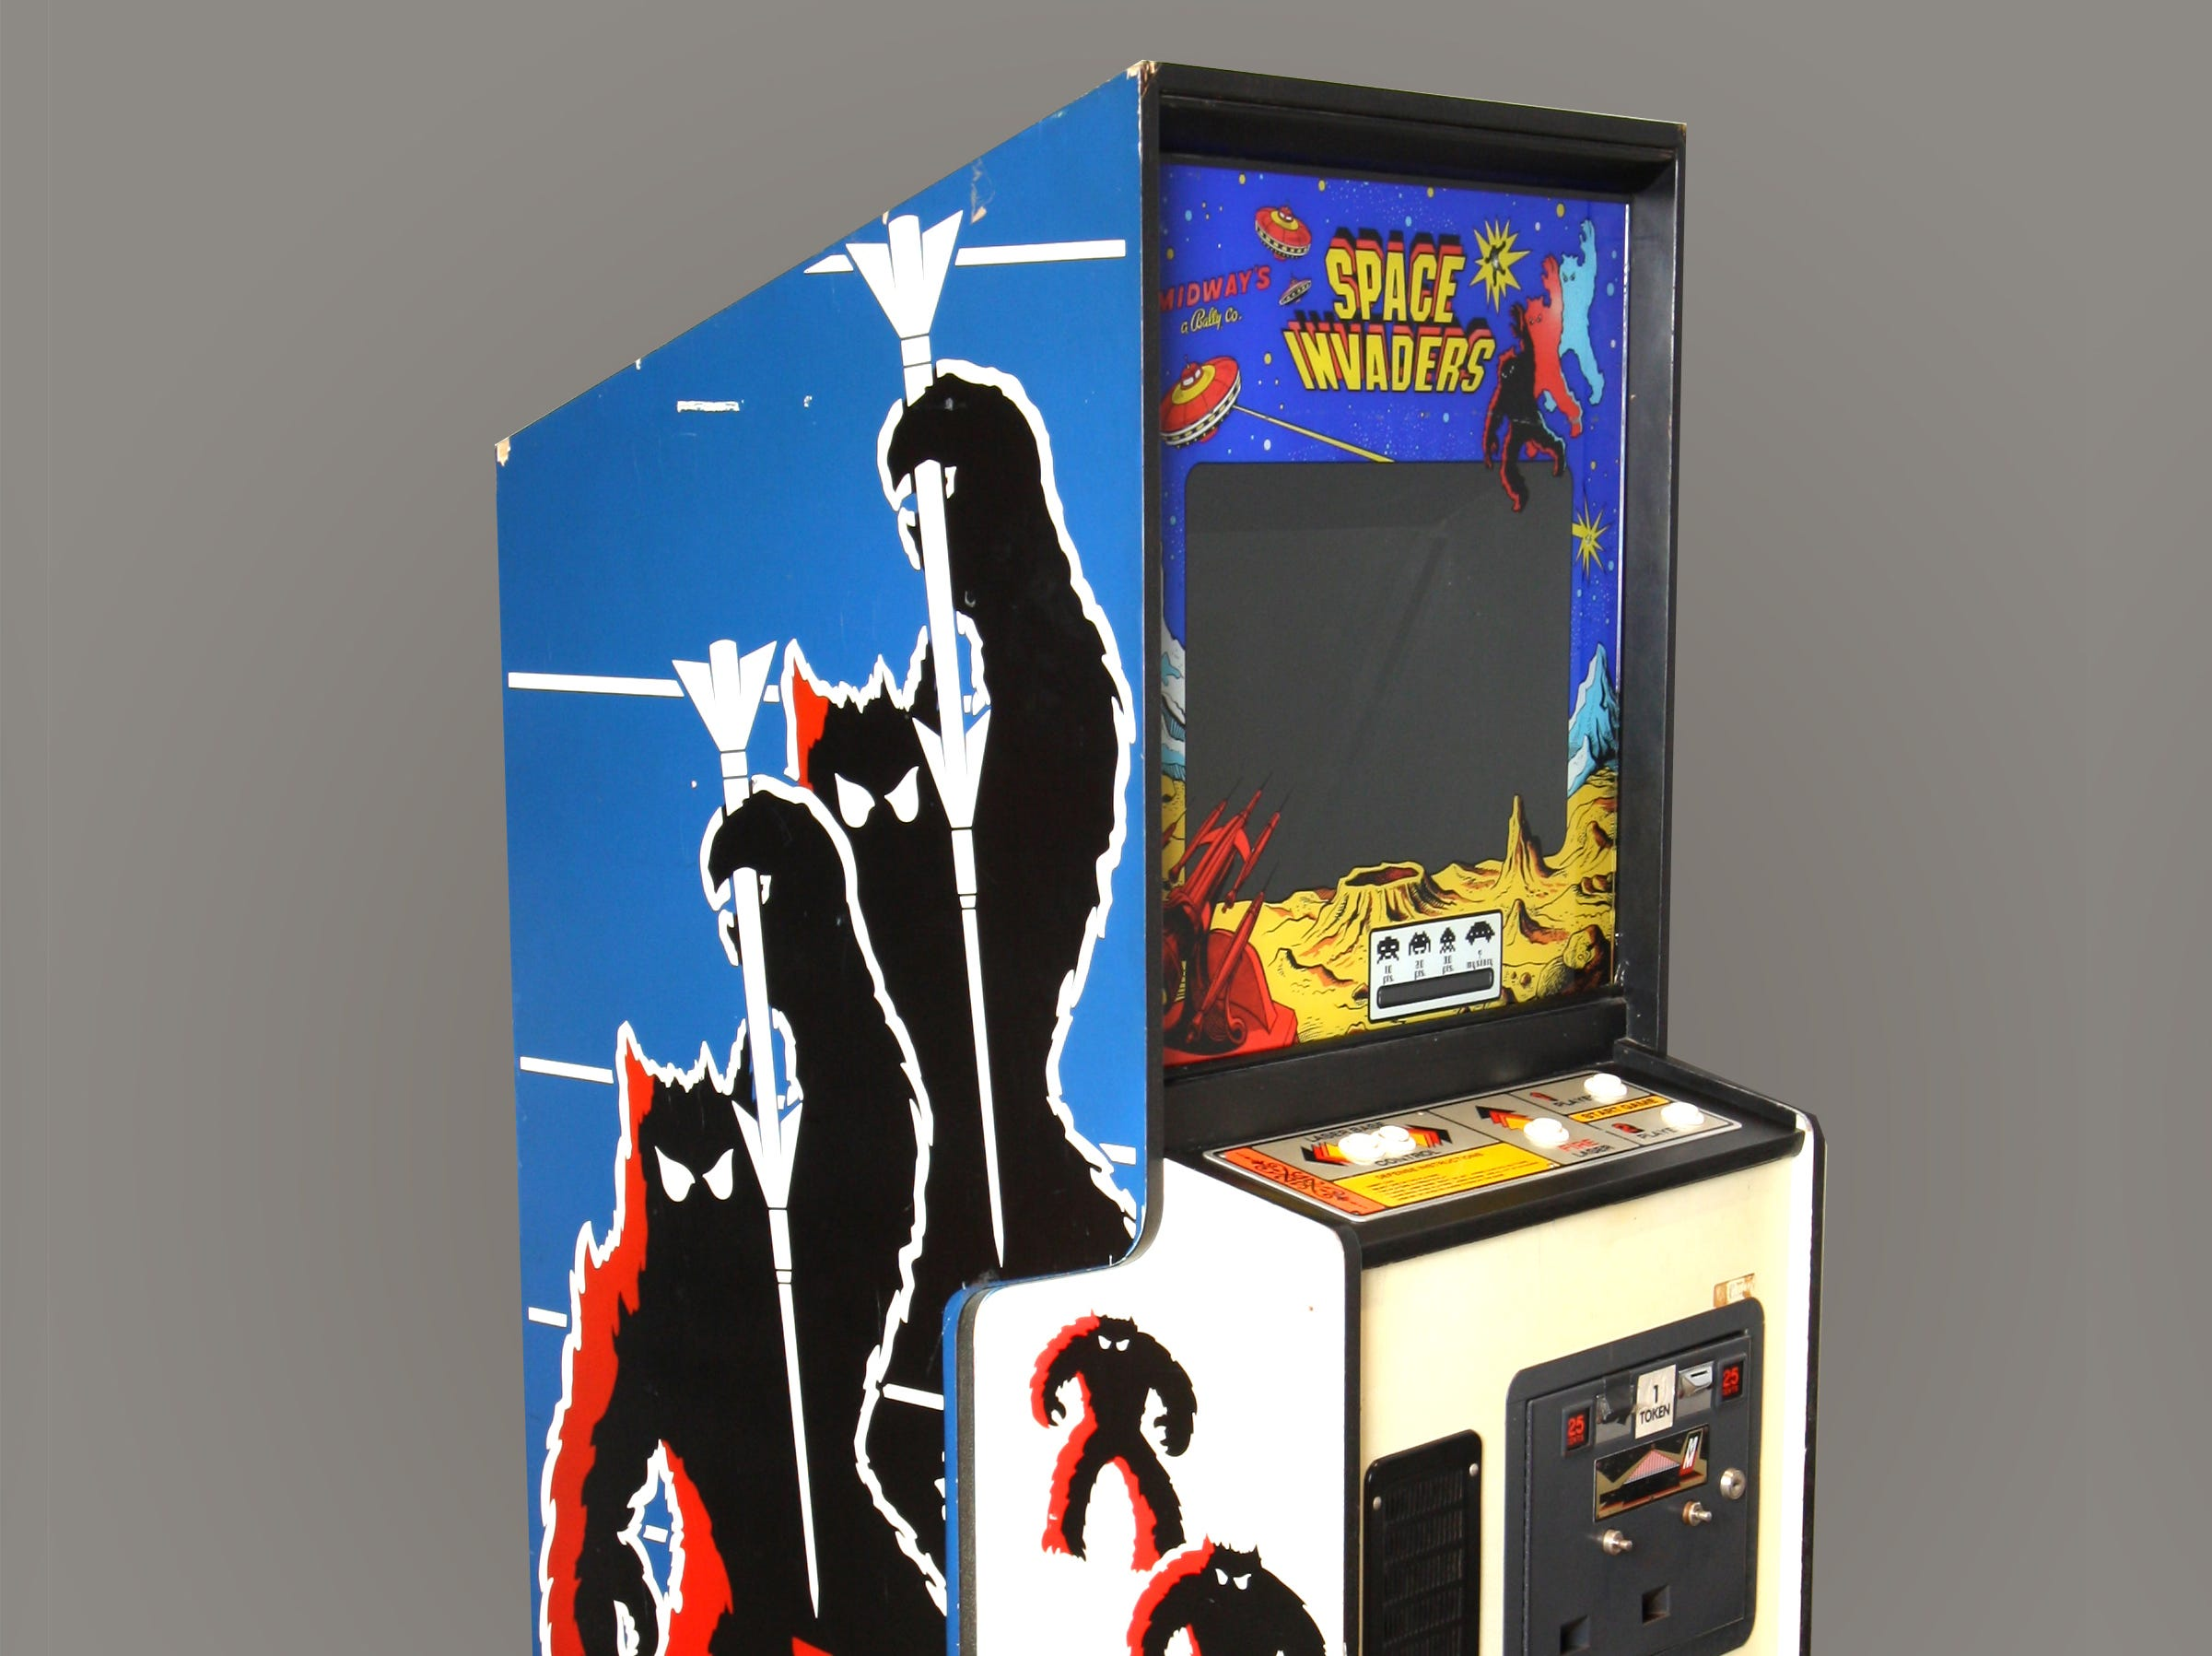 Space Invaders was inducted into the World Video Game Hall of Fame at The Strong National Museum of Play in  Rochester, New York in 2016.